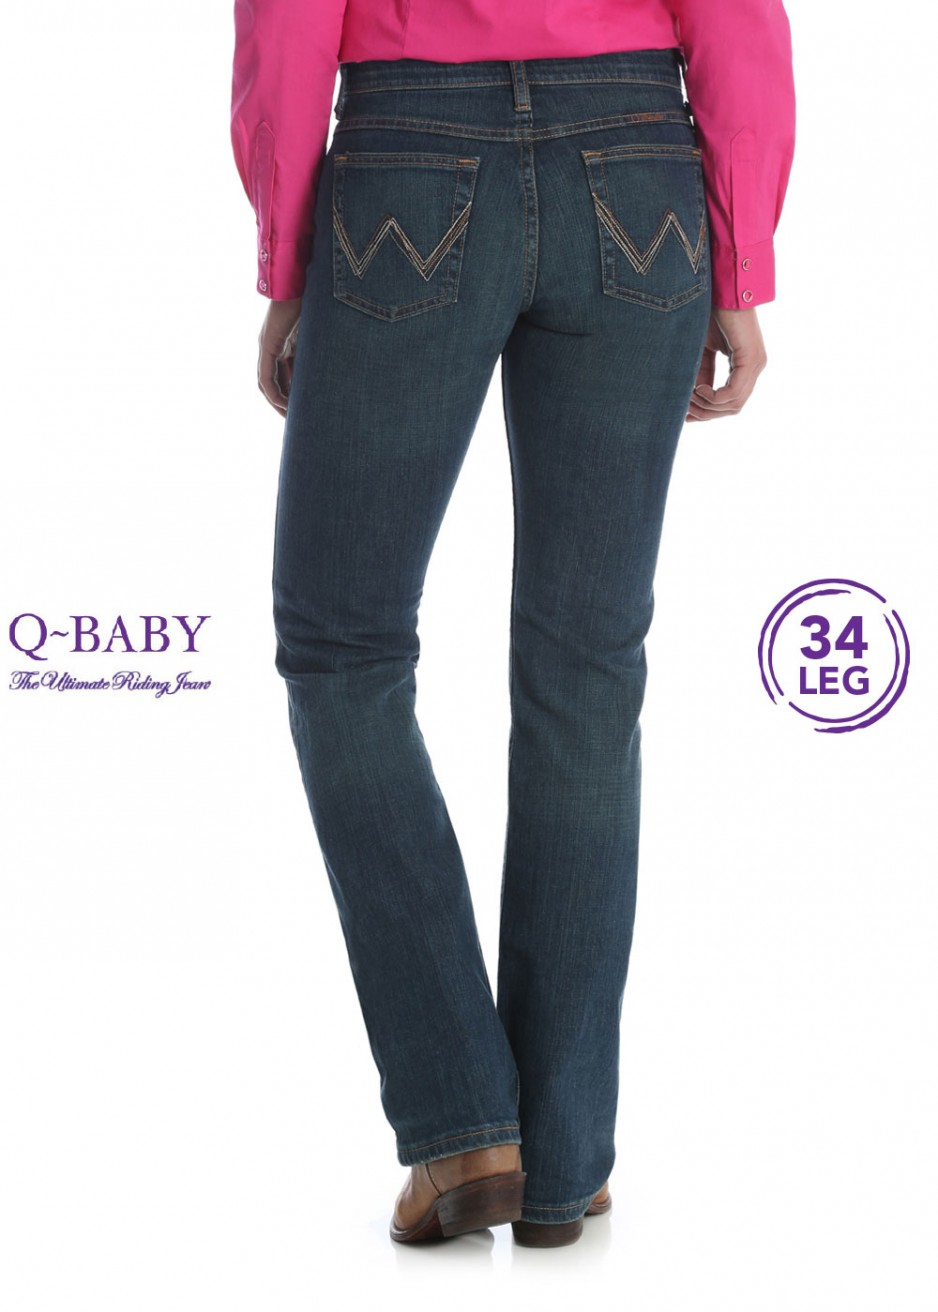 WOMENS ULTIMATE RIDING JEAN - Q BABY